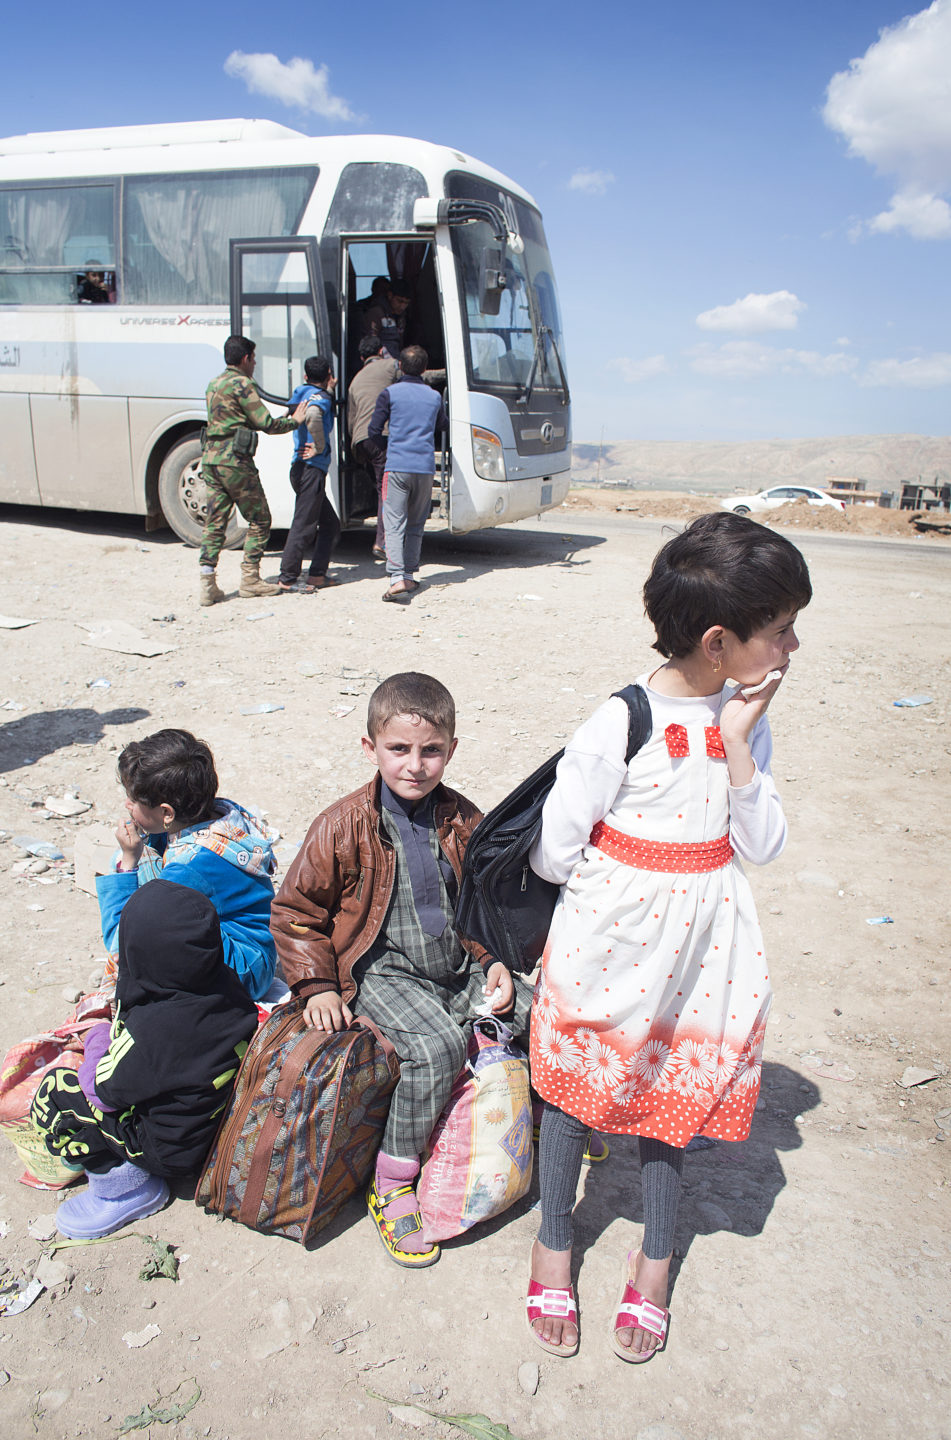 Saad Nashaf, 7, whose mother Jinan Ali was killed in an airstrike in Mosul, waits for a bus to transport his family to a safe camp in Iraqi Kurdistan.